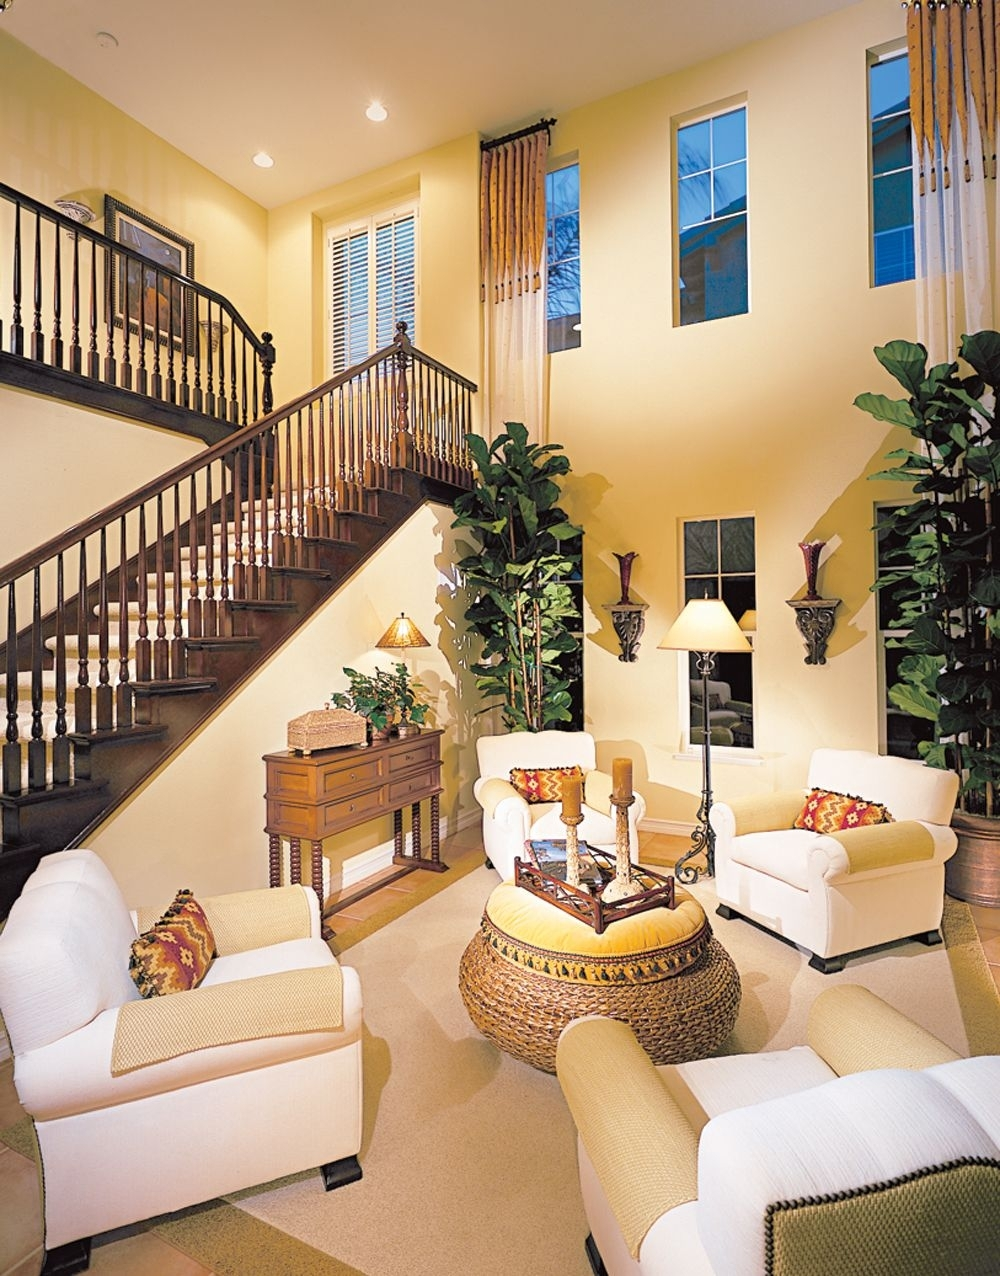 Not A Fan Of Stairs, But I Don't Think I'd Mind Them If The Rest In Recent High Ceiling Wall Accents (View 4 of 15)